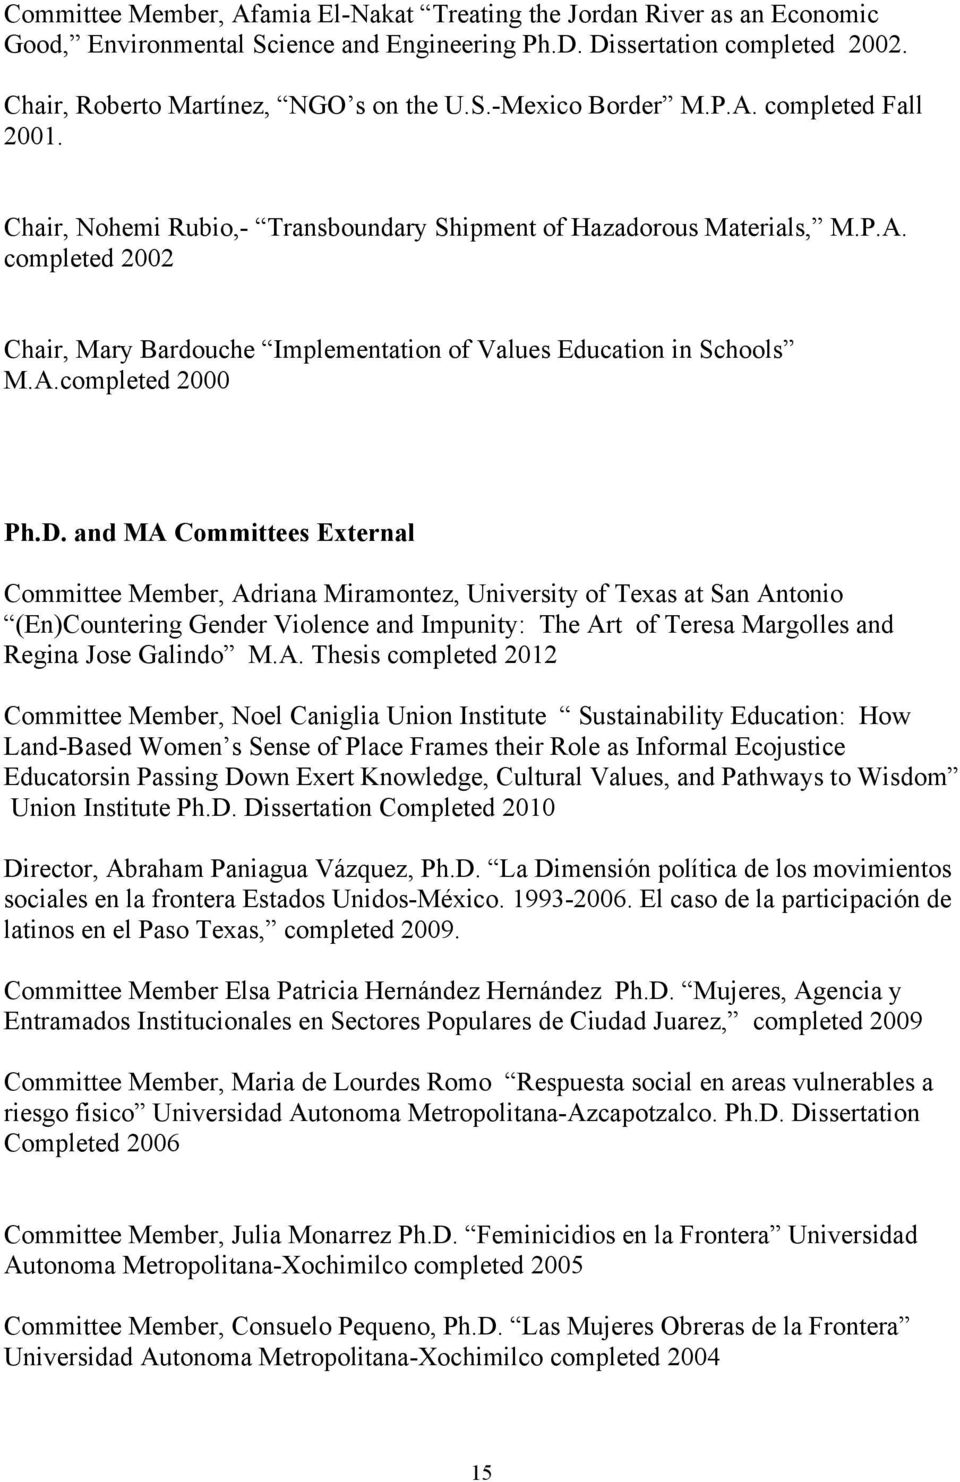 D. and MA Committees External Committee Member, Adriana Miramontez, University of Texas at San Antonio (En)Countering Gender Violence and Impunity: The Art of Teresa Margolles and Regina Jose Galindo